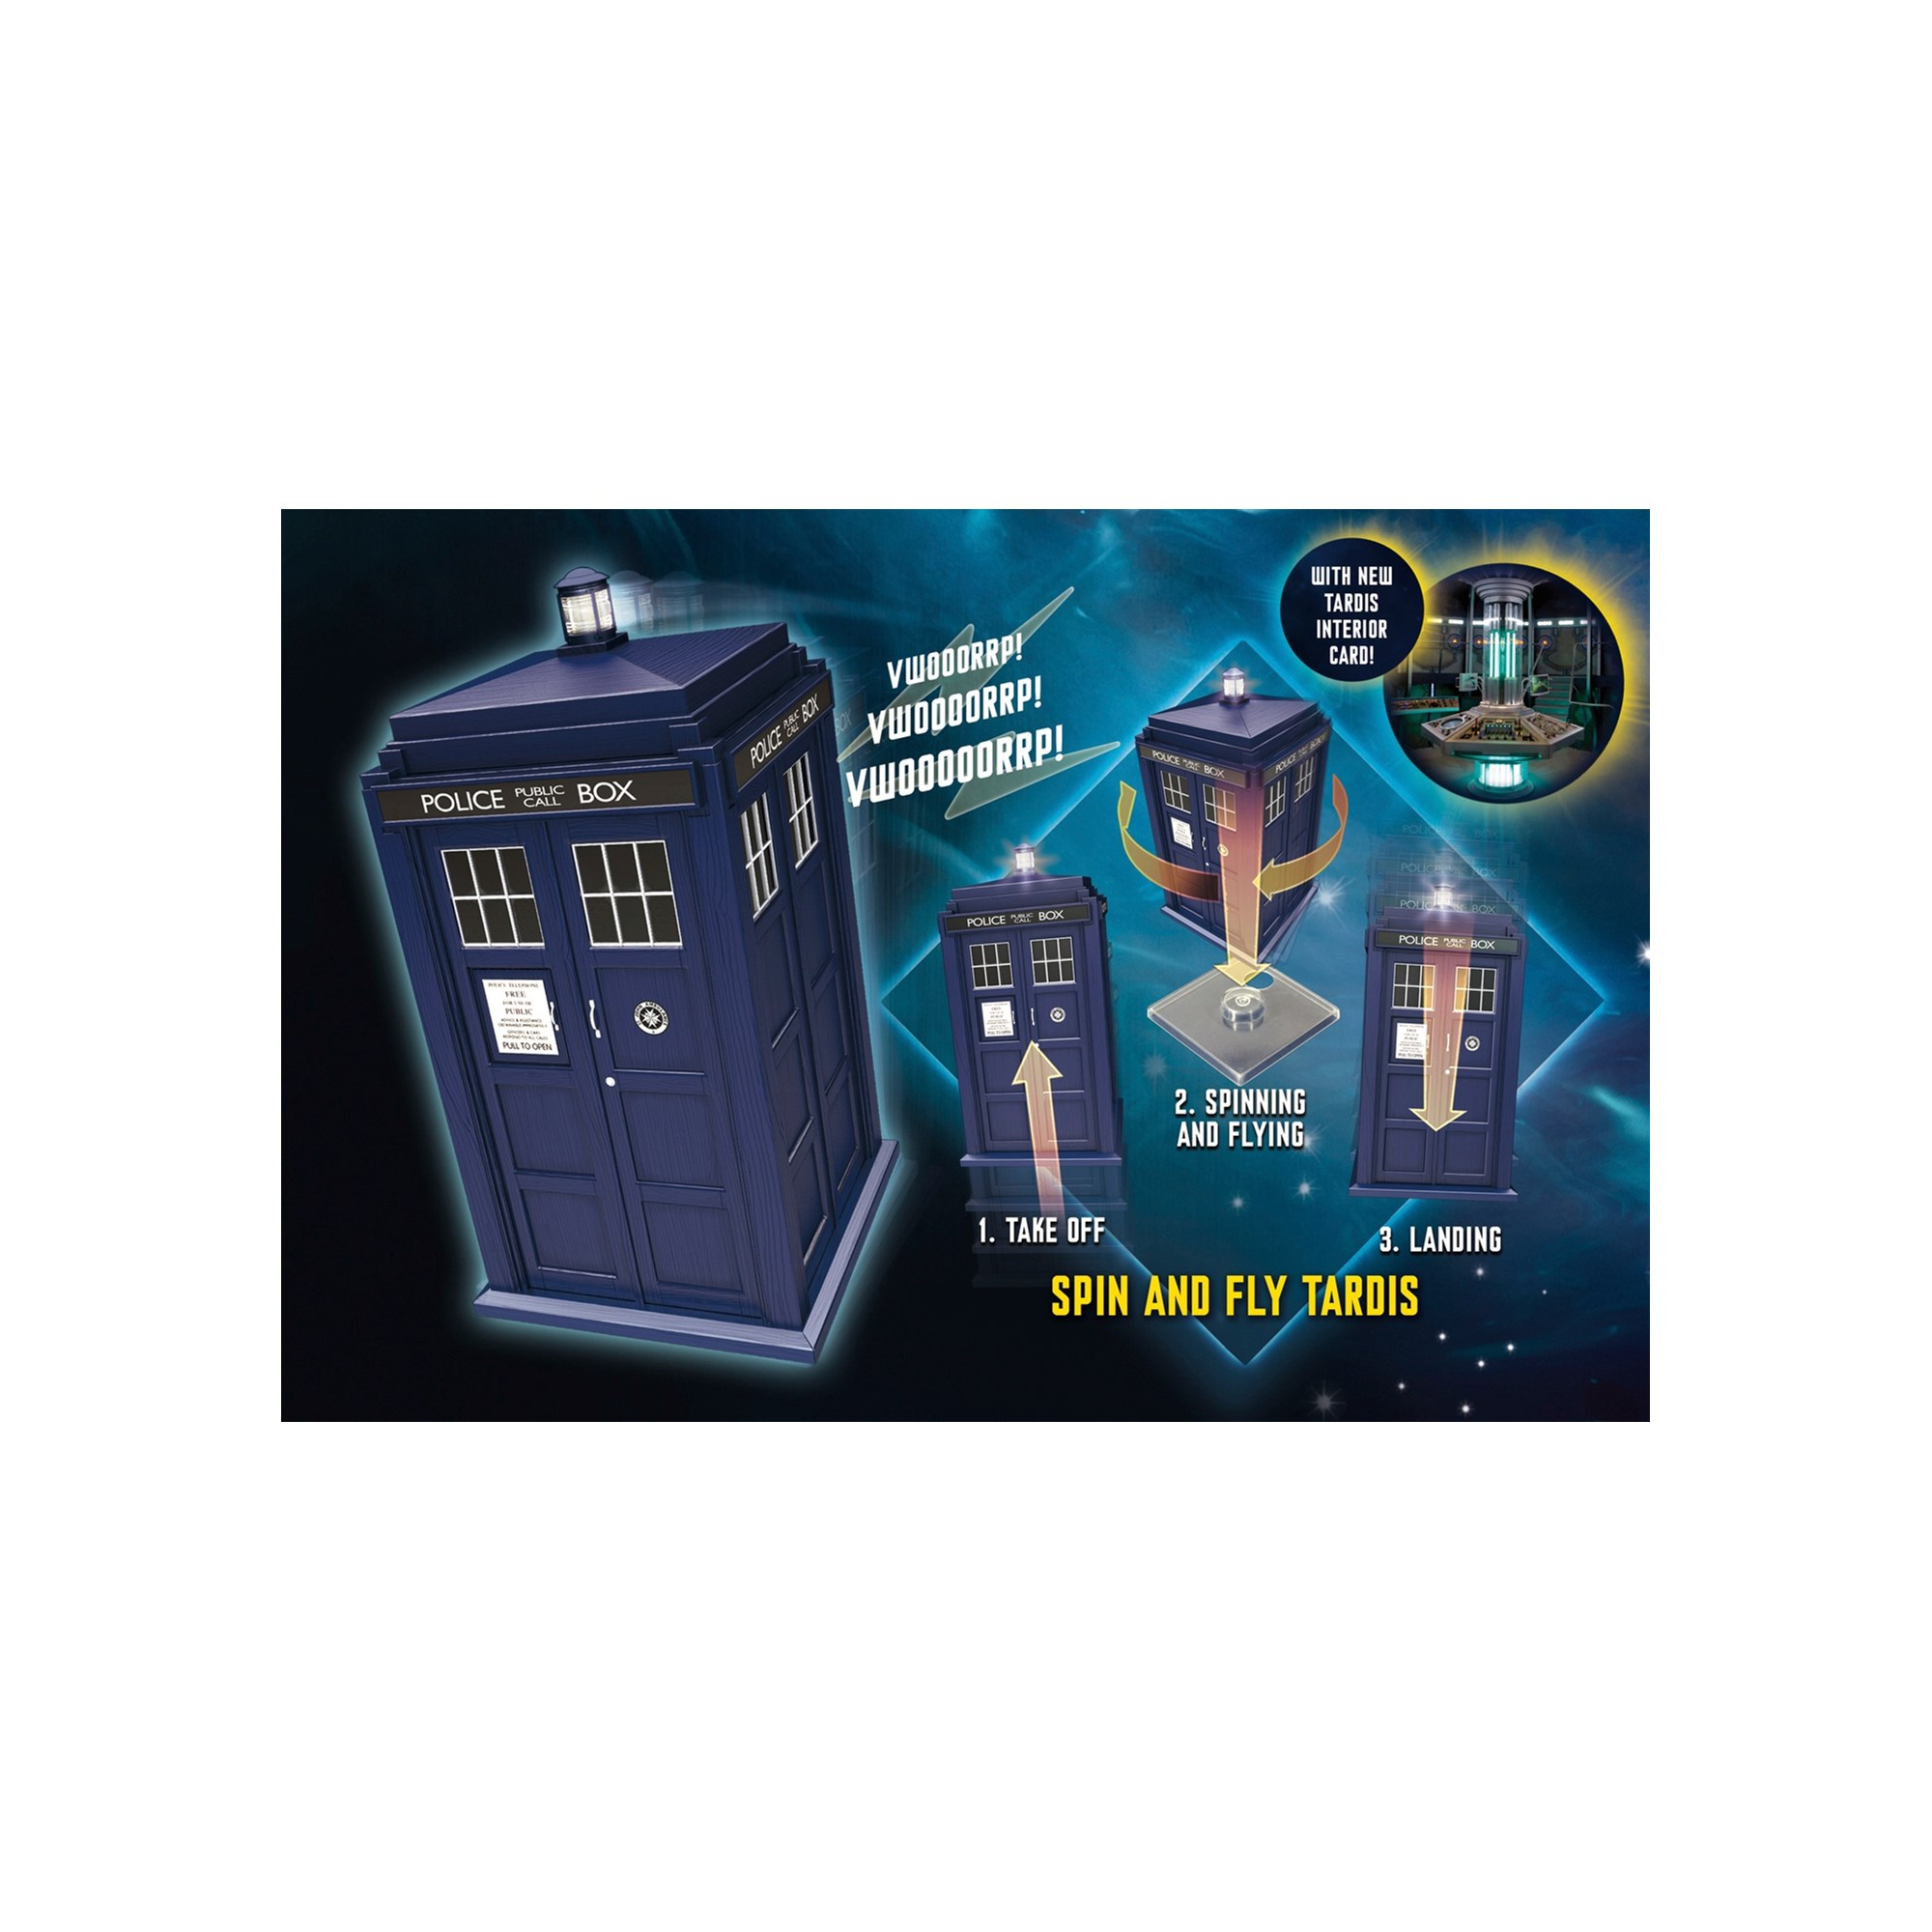 Dr. Who 10cm Scale Spin and Fly Tardis